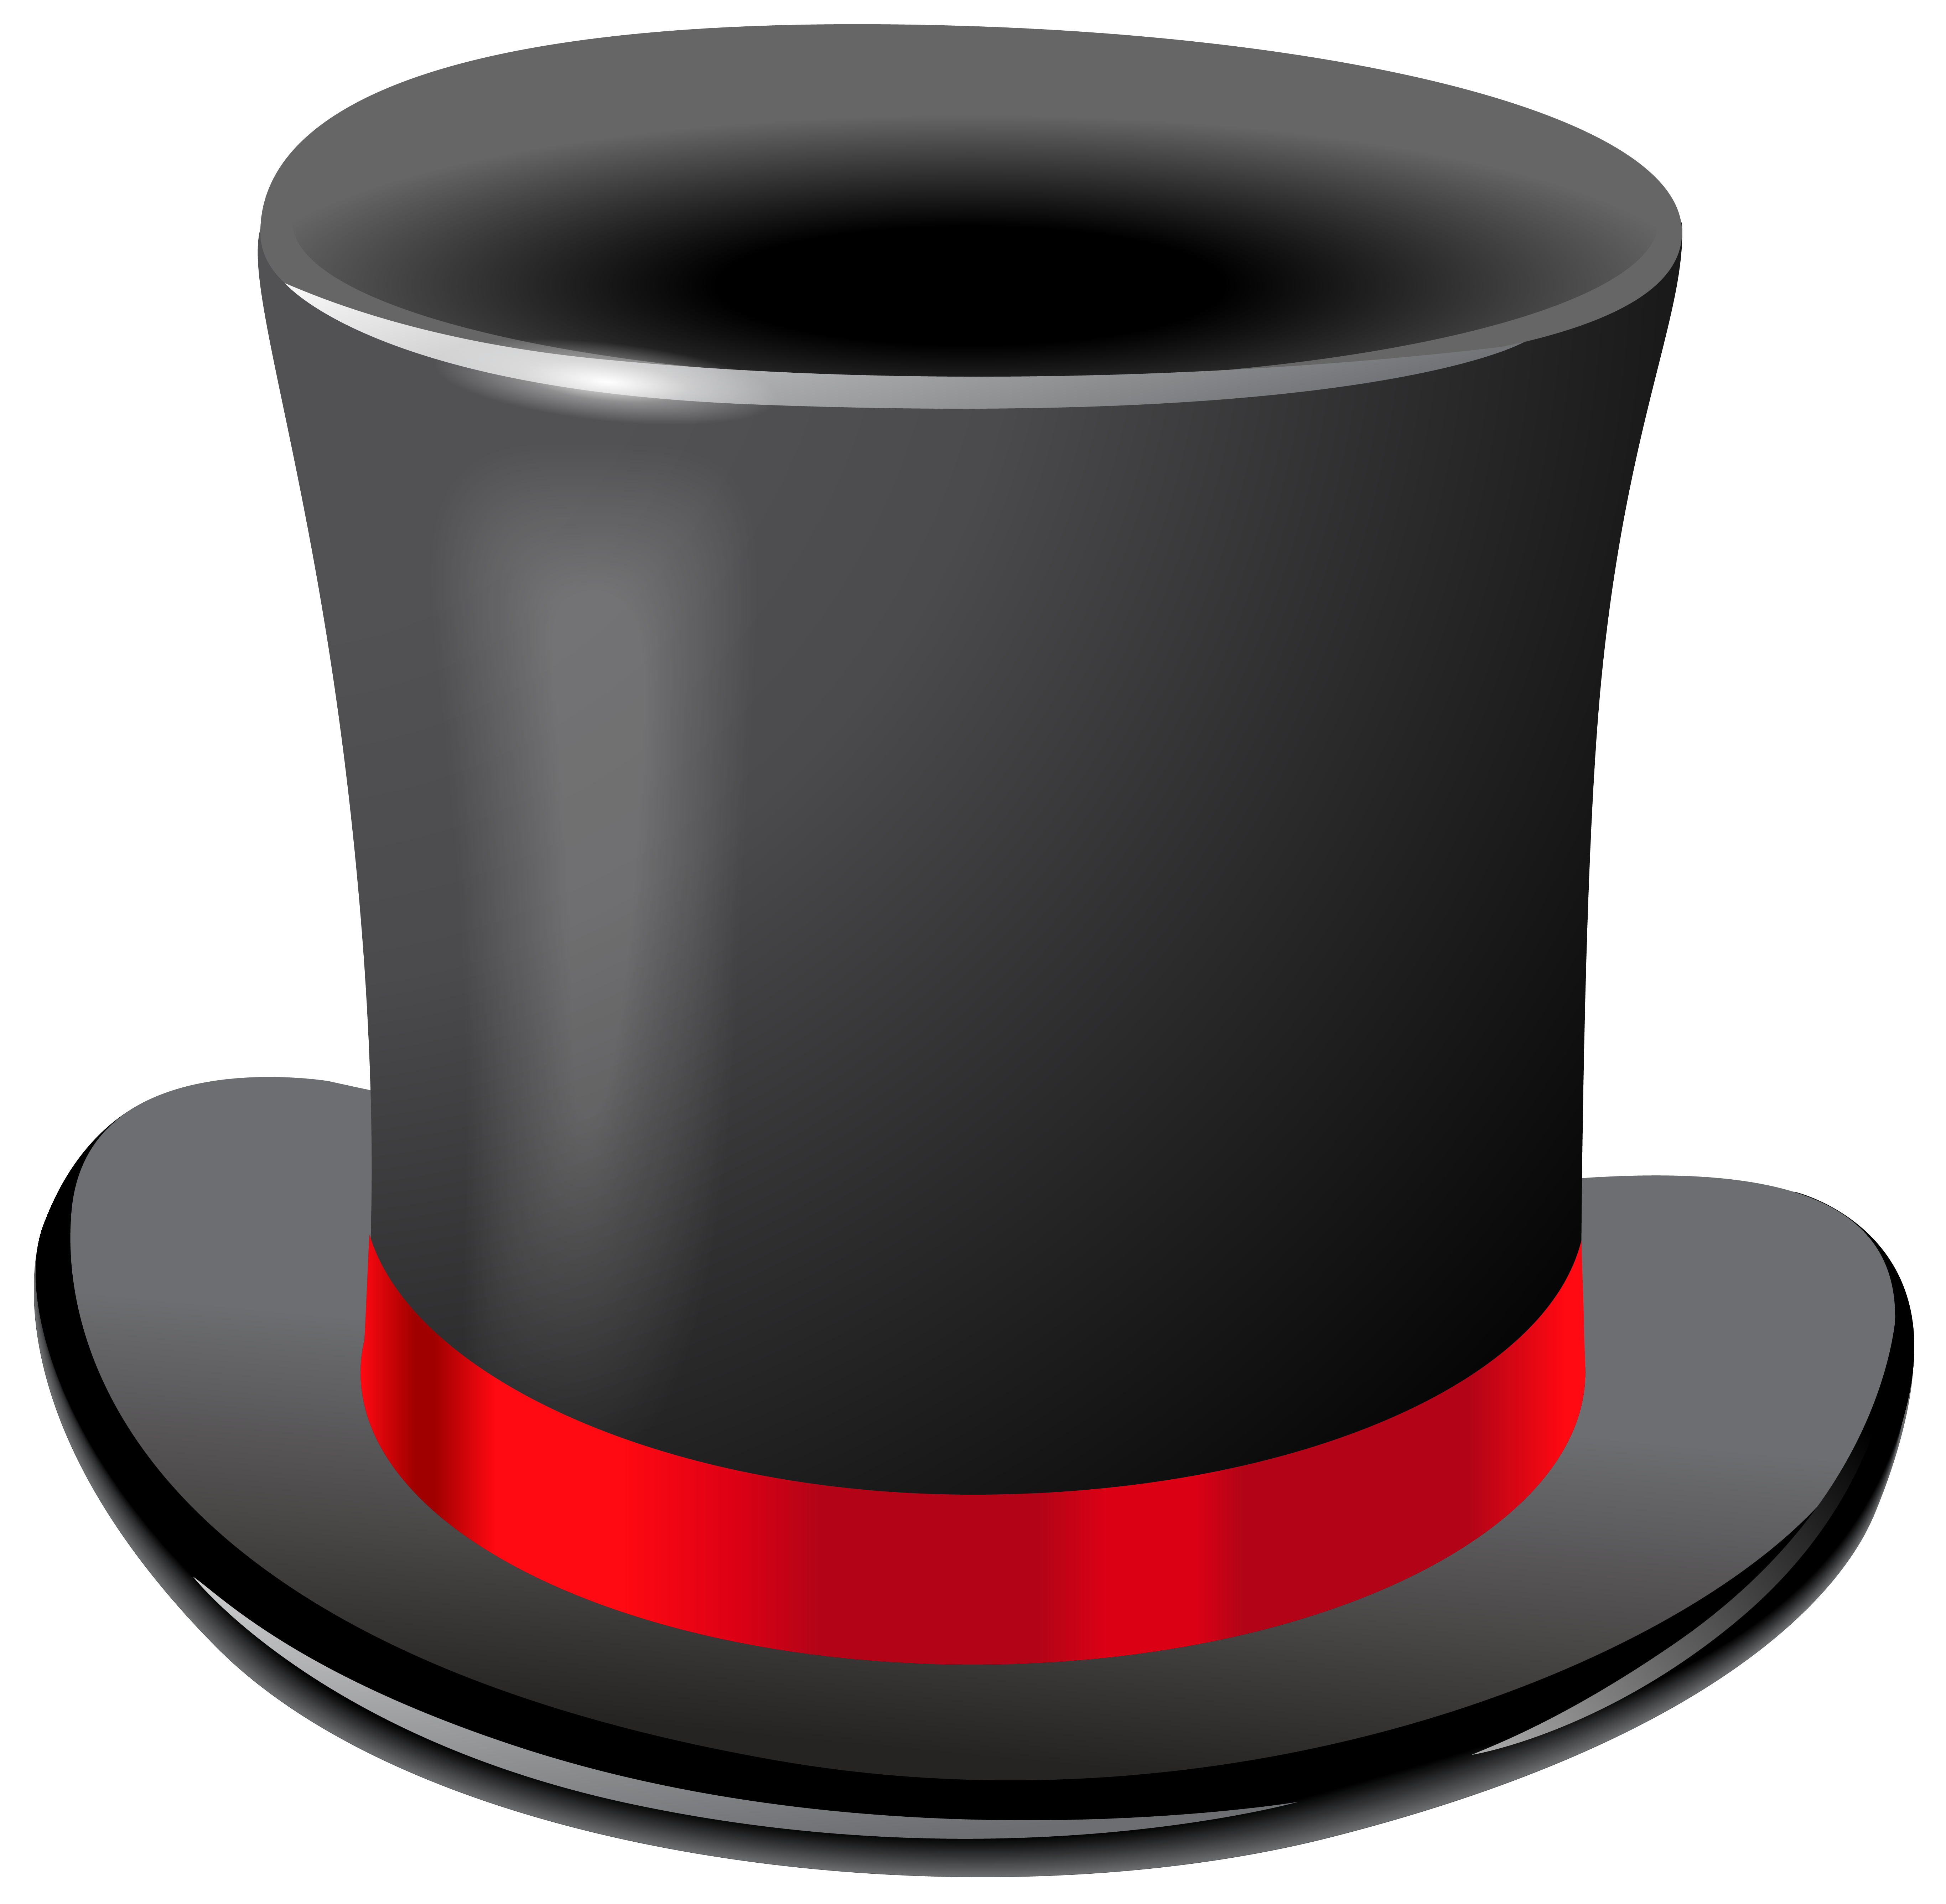 Top hat clipart blue ribbon black and white download Black Top Hat Transparent PNG Clip Art Image | Gallery ... black and white download